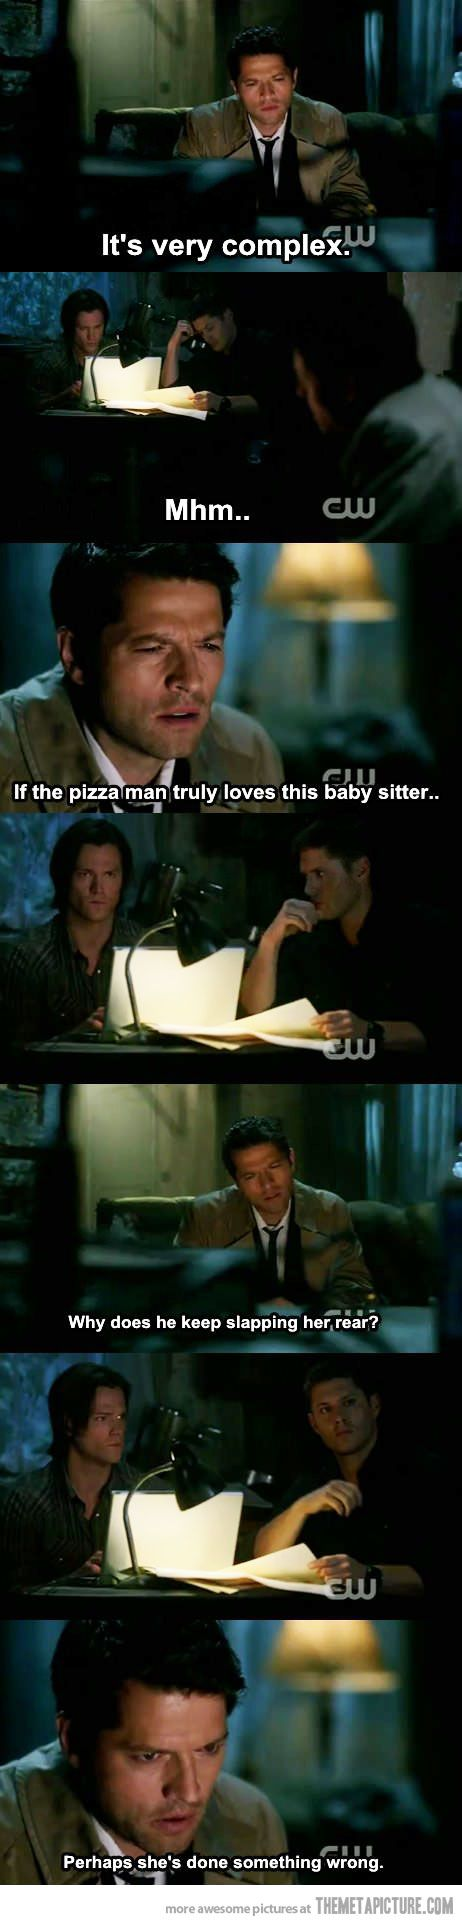 One of my favorite scenes with Castiel in Supernatural :D I'd be the babysitter to his pizza man anytime LOL I might have pinned this already but it's too hilarious